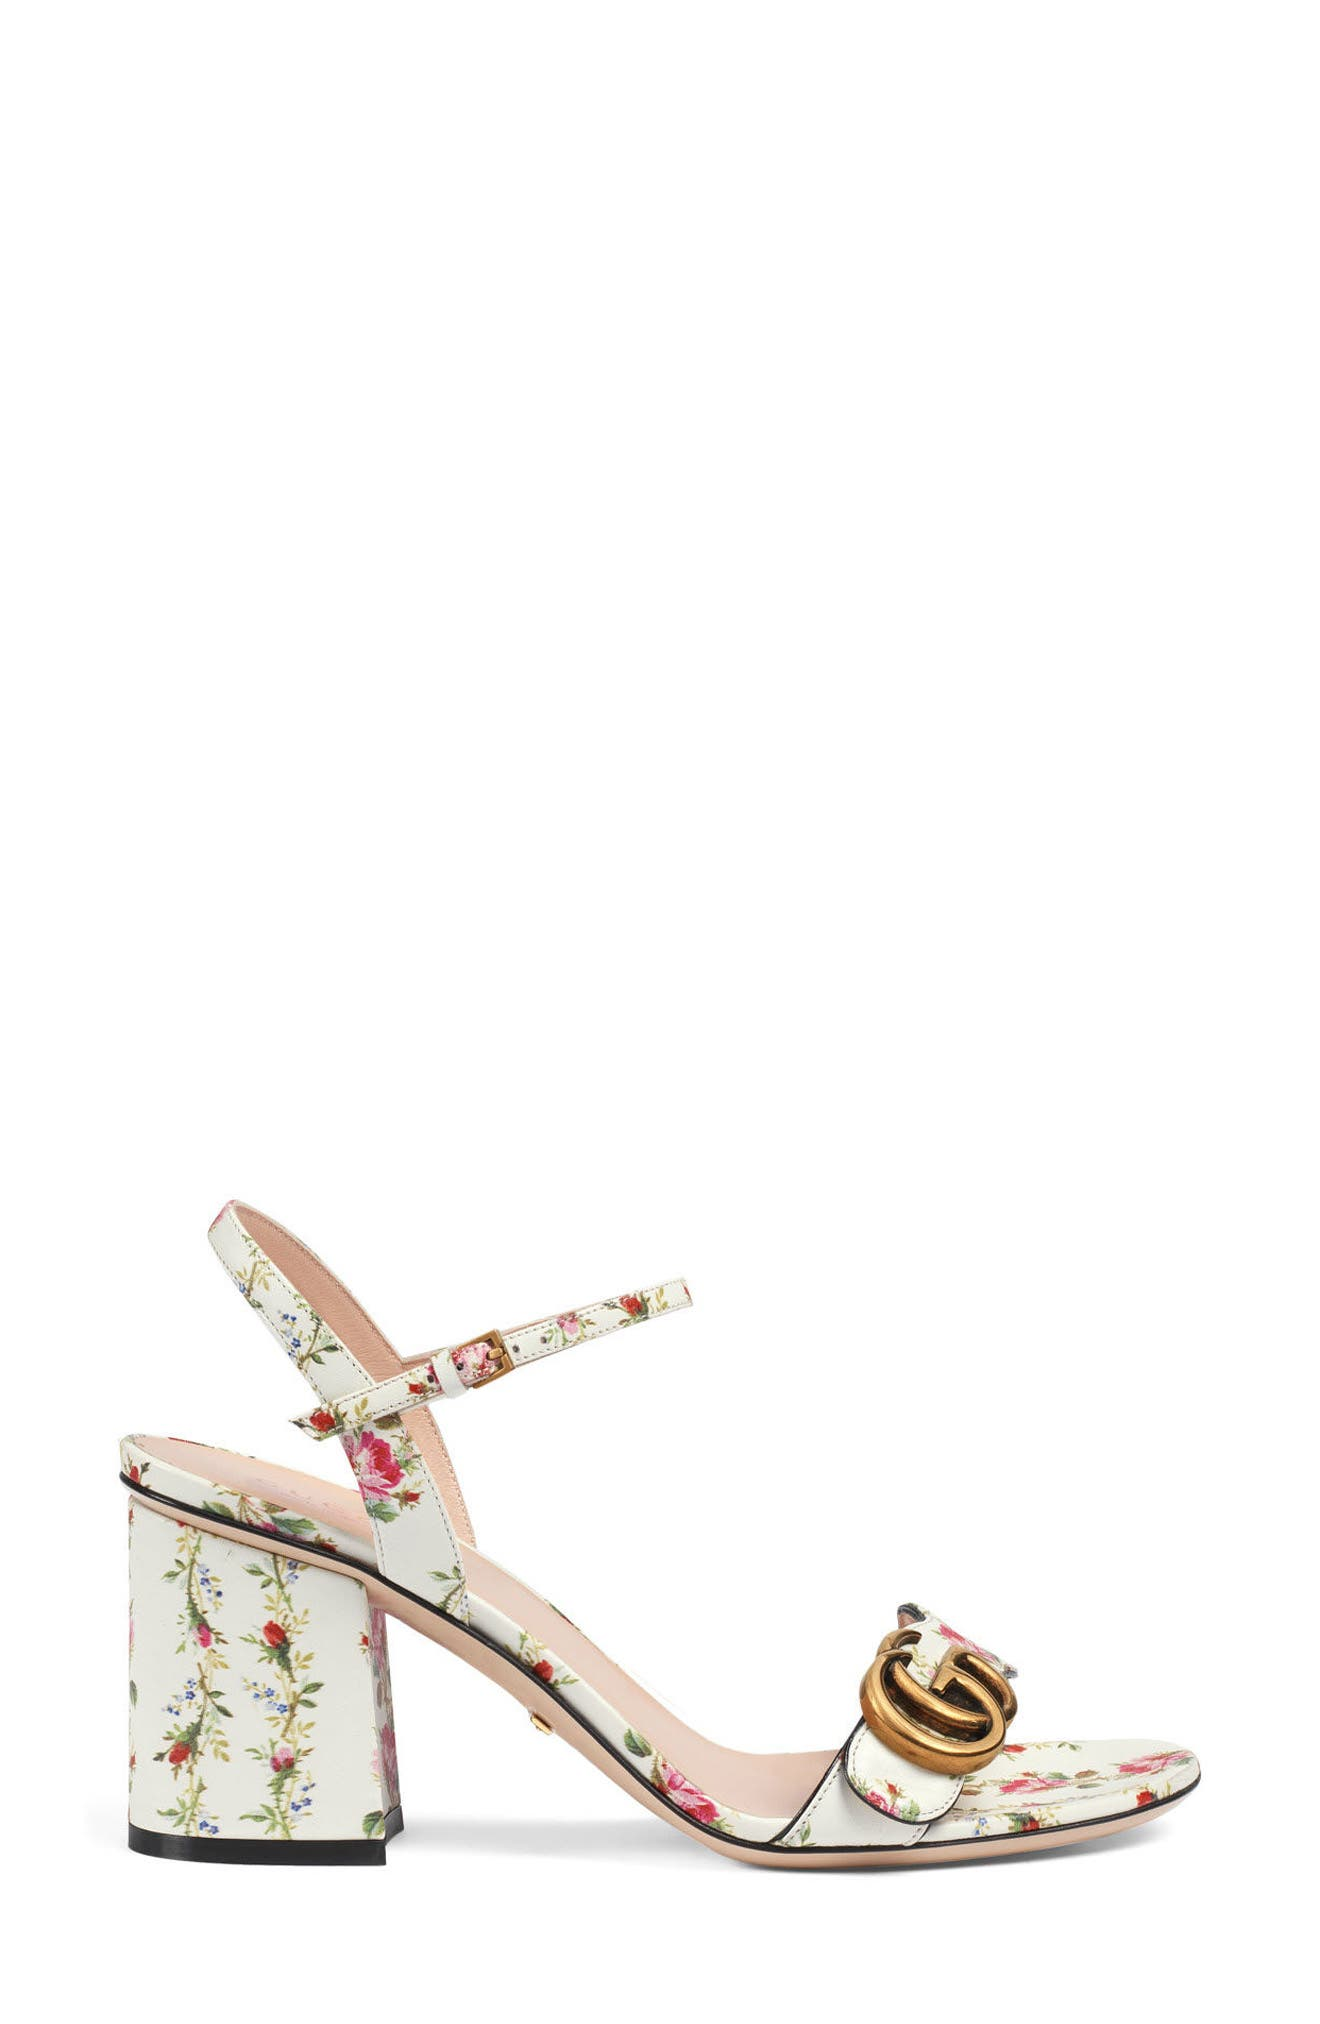 GG Marmont Block Heel Sandal,                             Alternate thumbnail 2, color,                             100